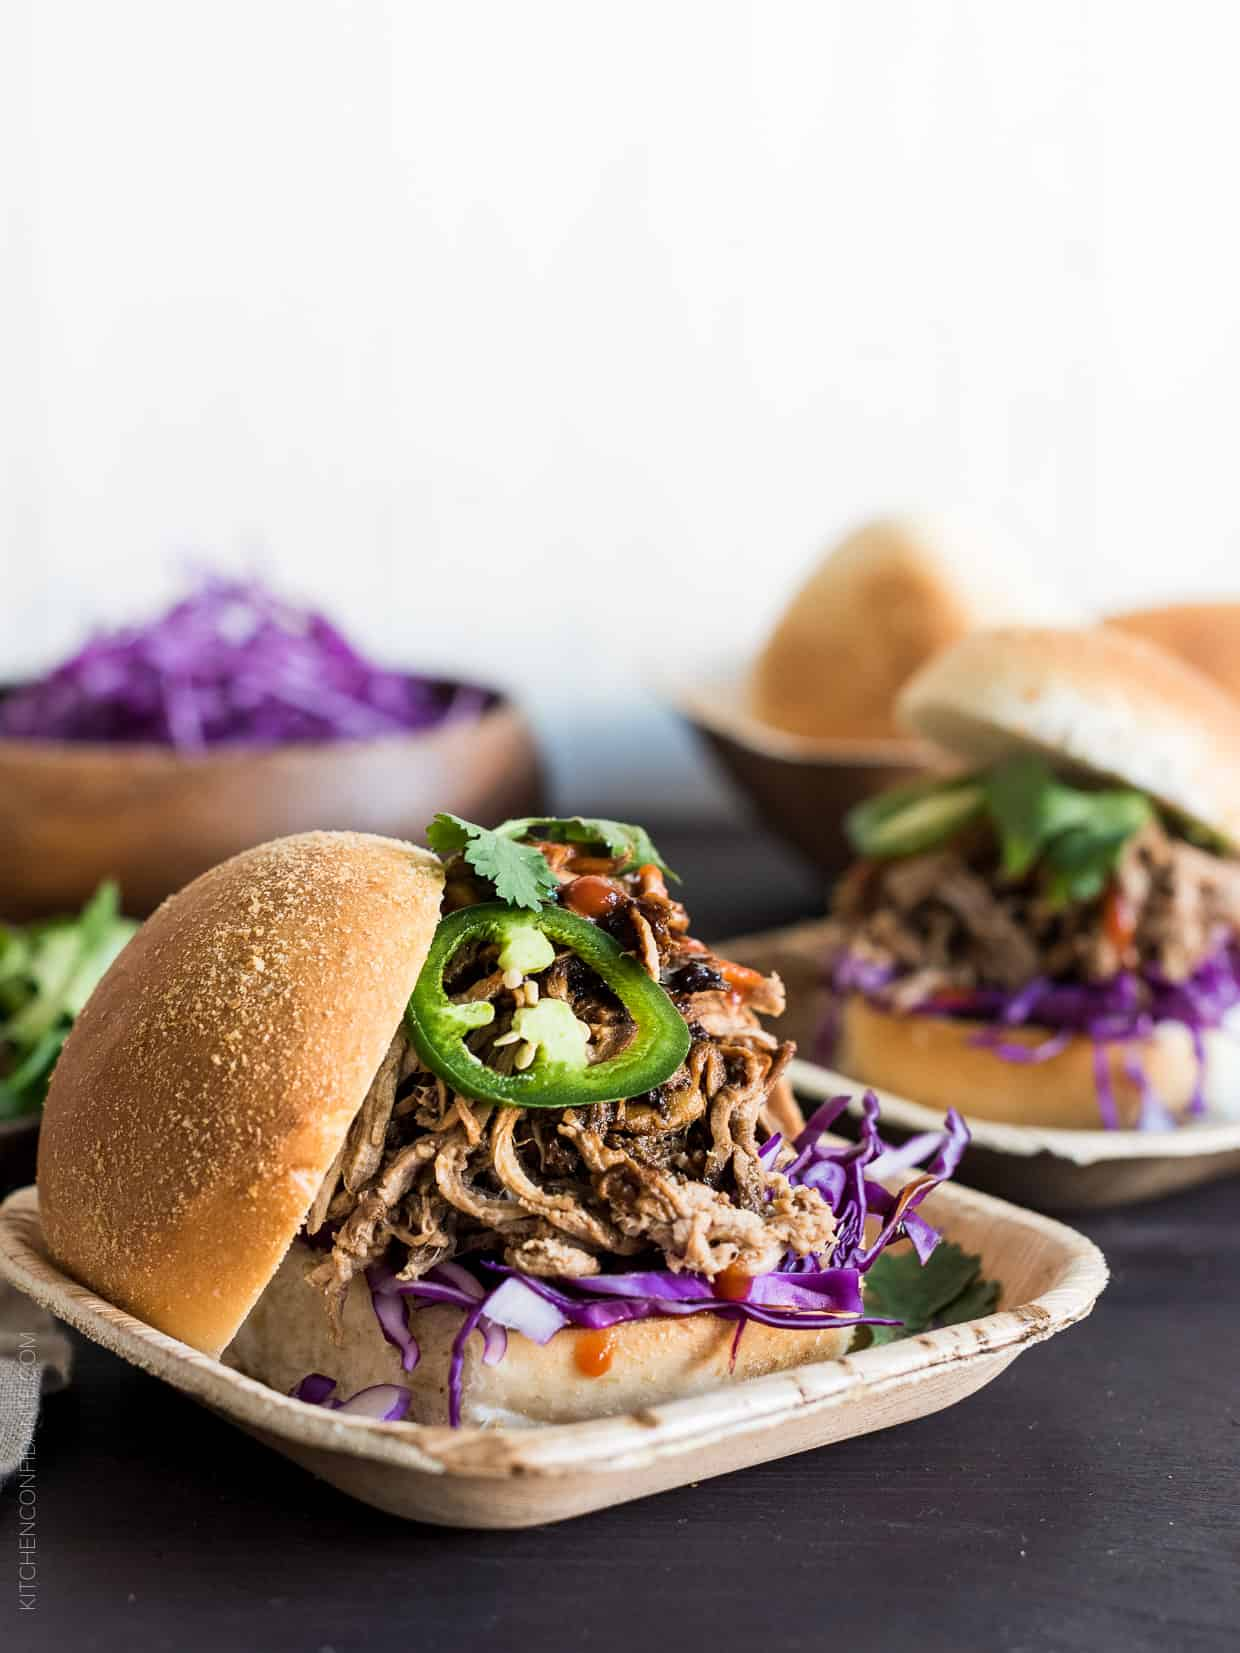 Filipino Adobo-style Pulled Pork Sandwiches are simple and delicious, thanks to the slow cooker!